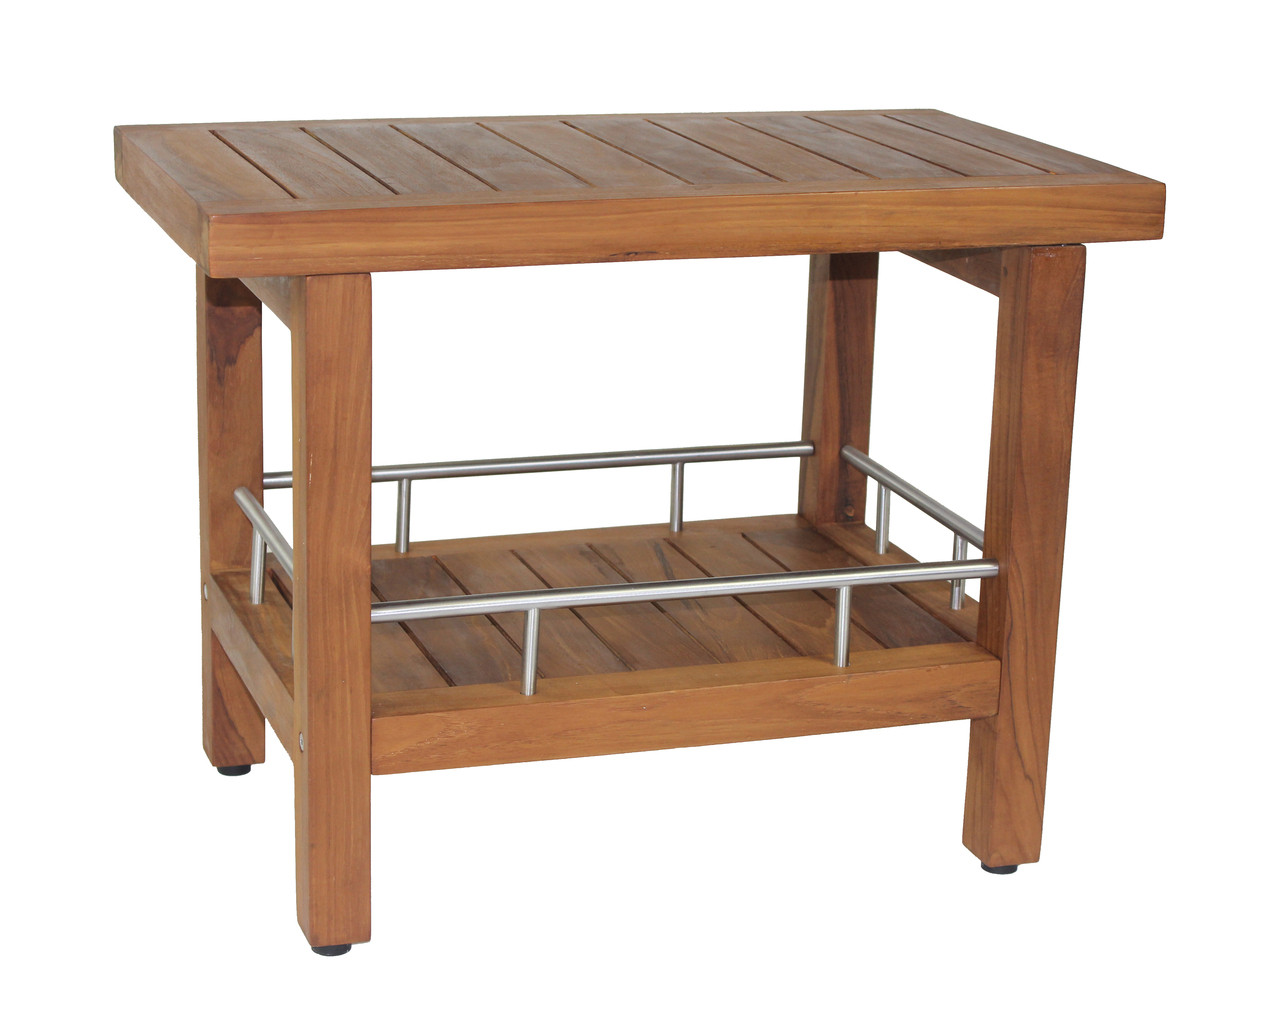 24 Wide Spa Teak Stainless Side Table With Shelf